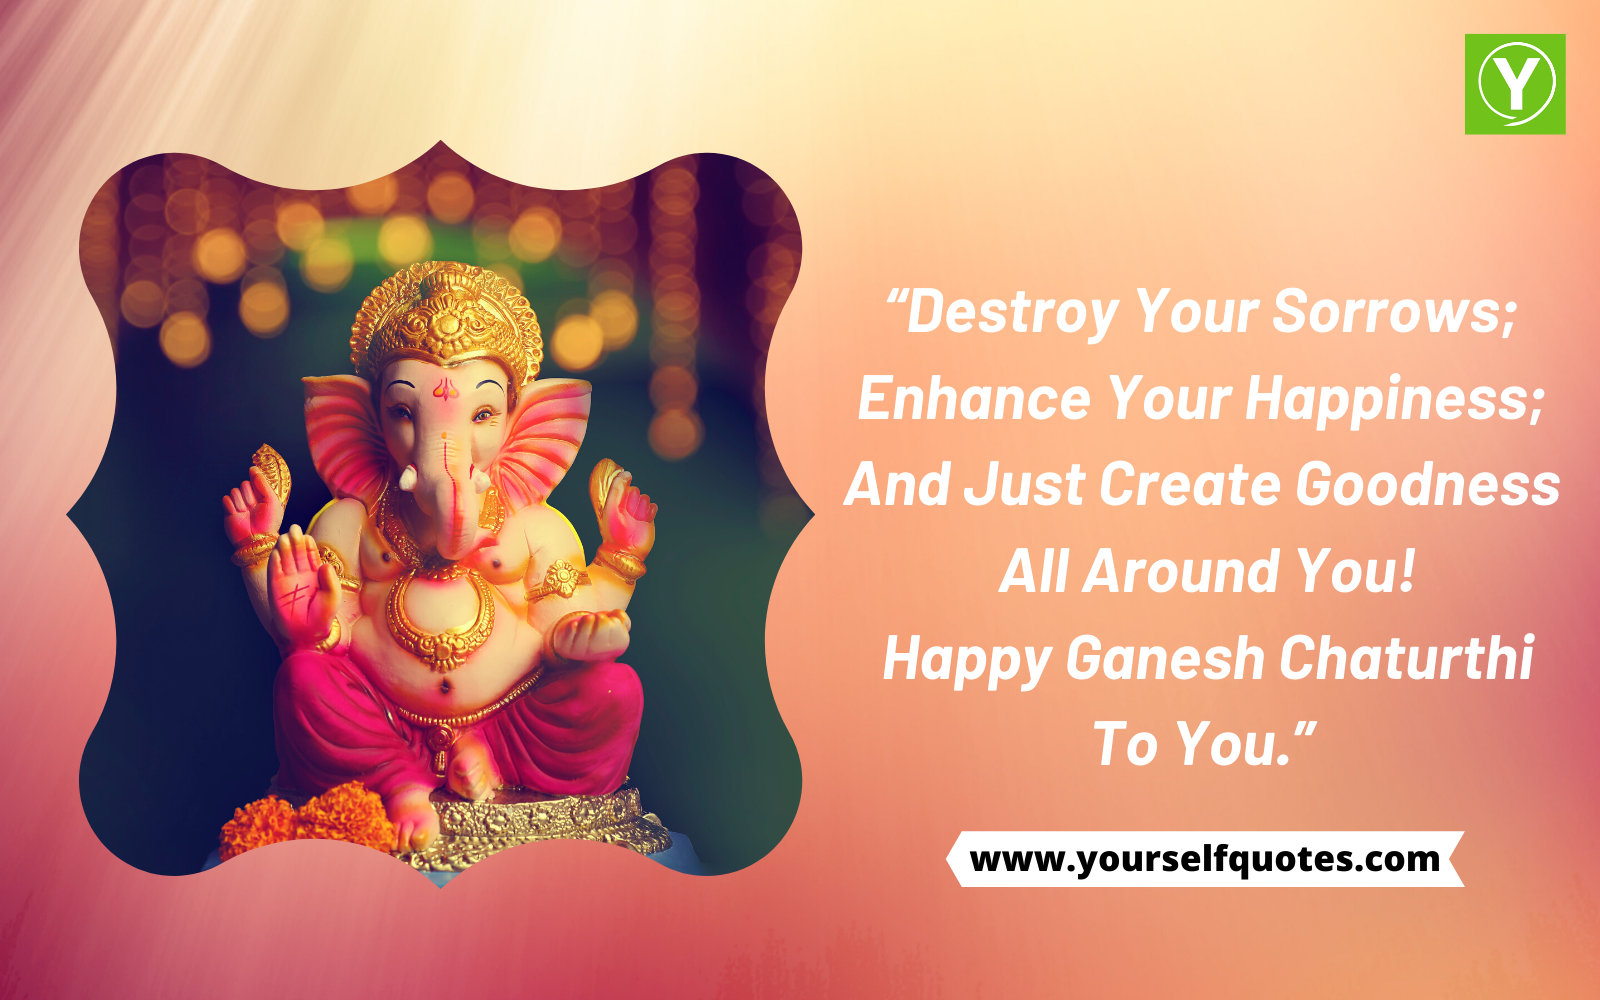 Wish You Happy Ganesh Chaturthi